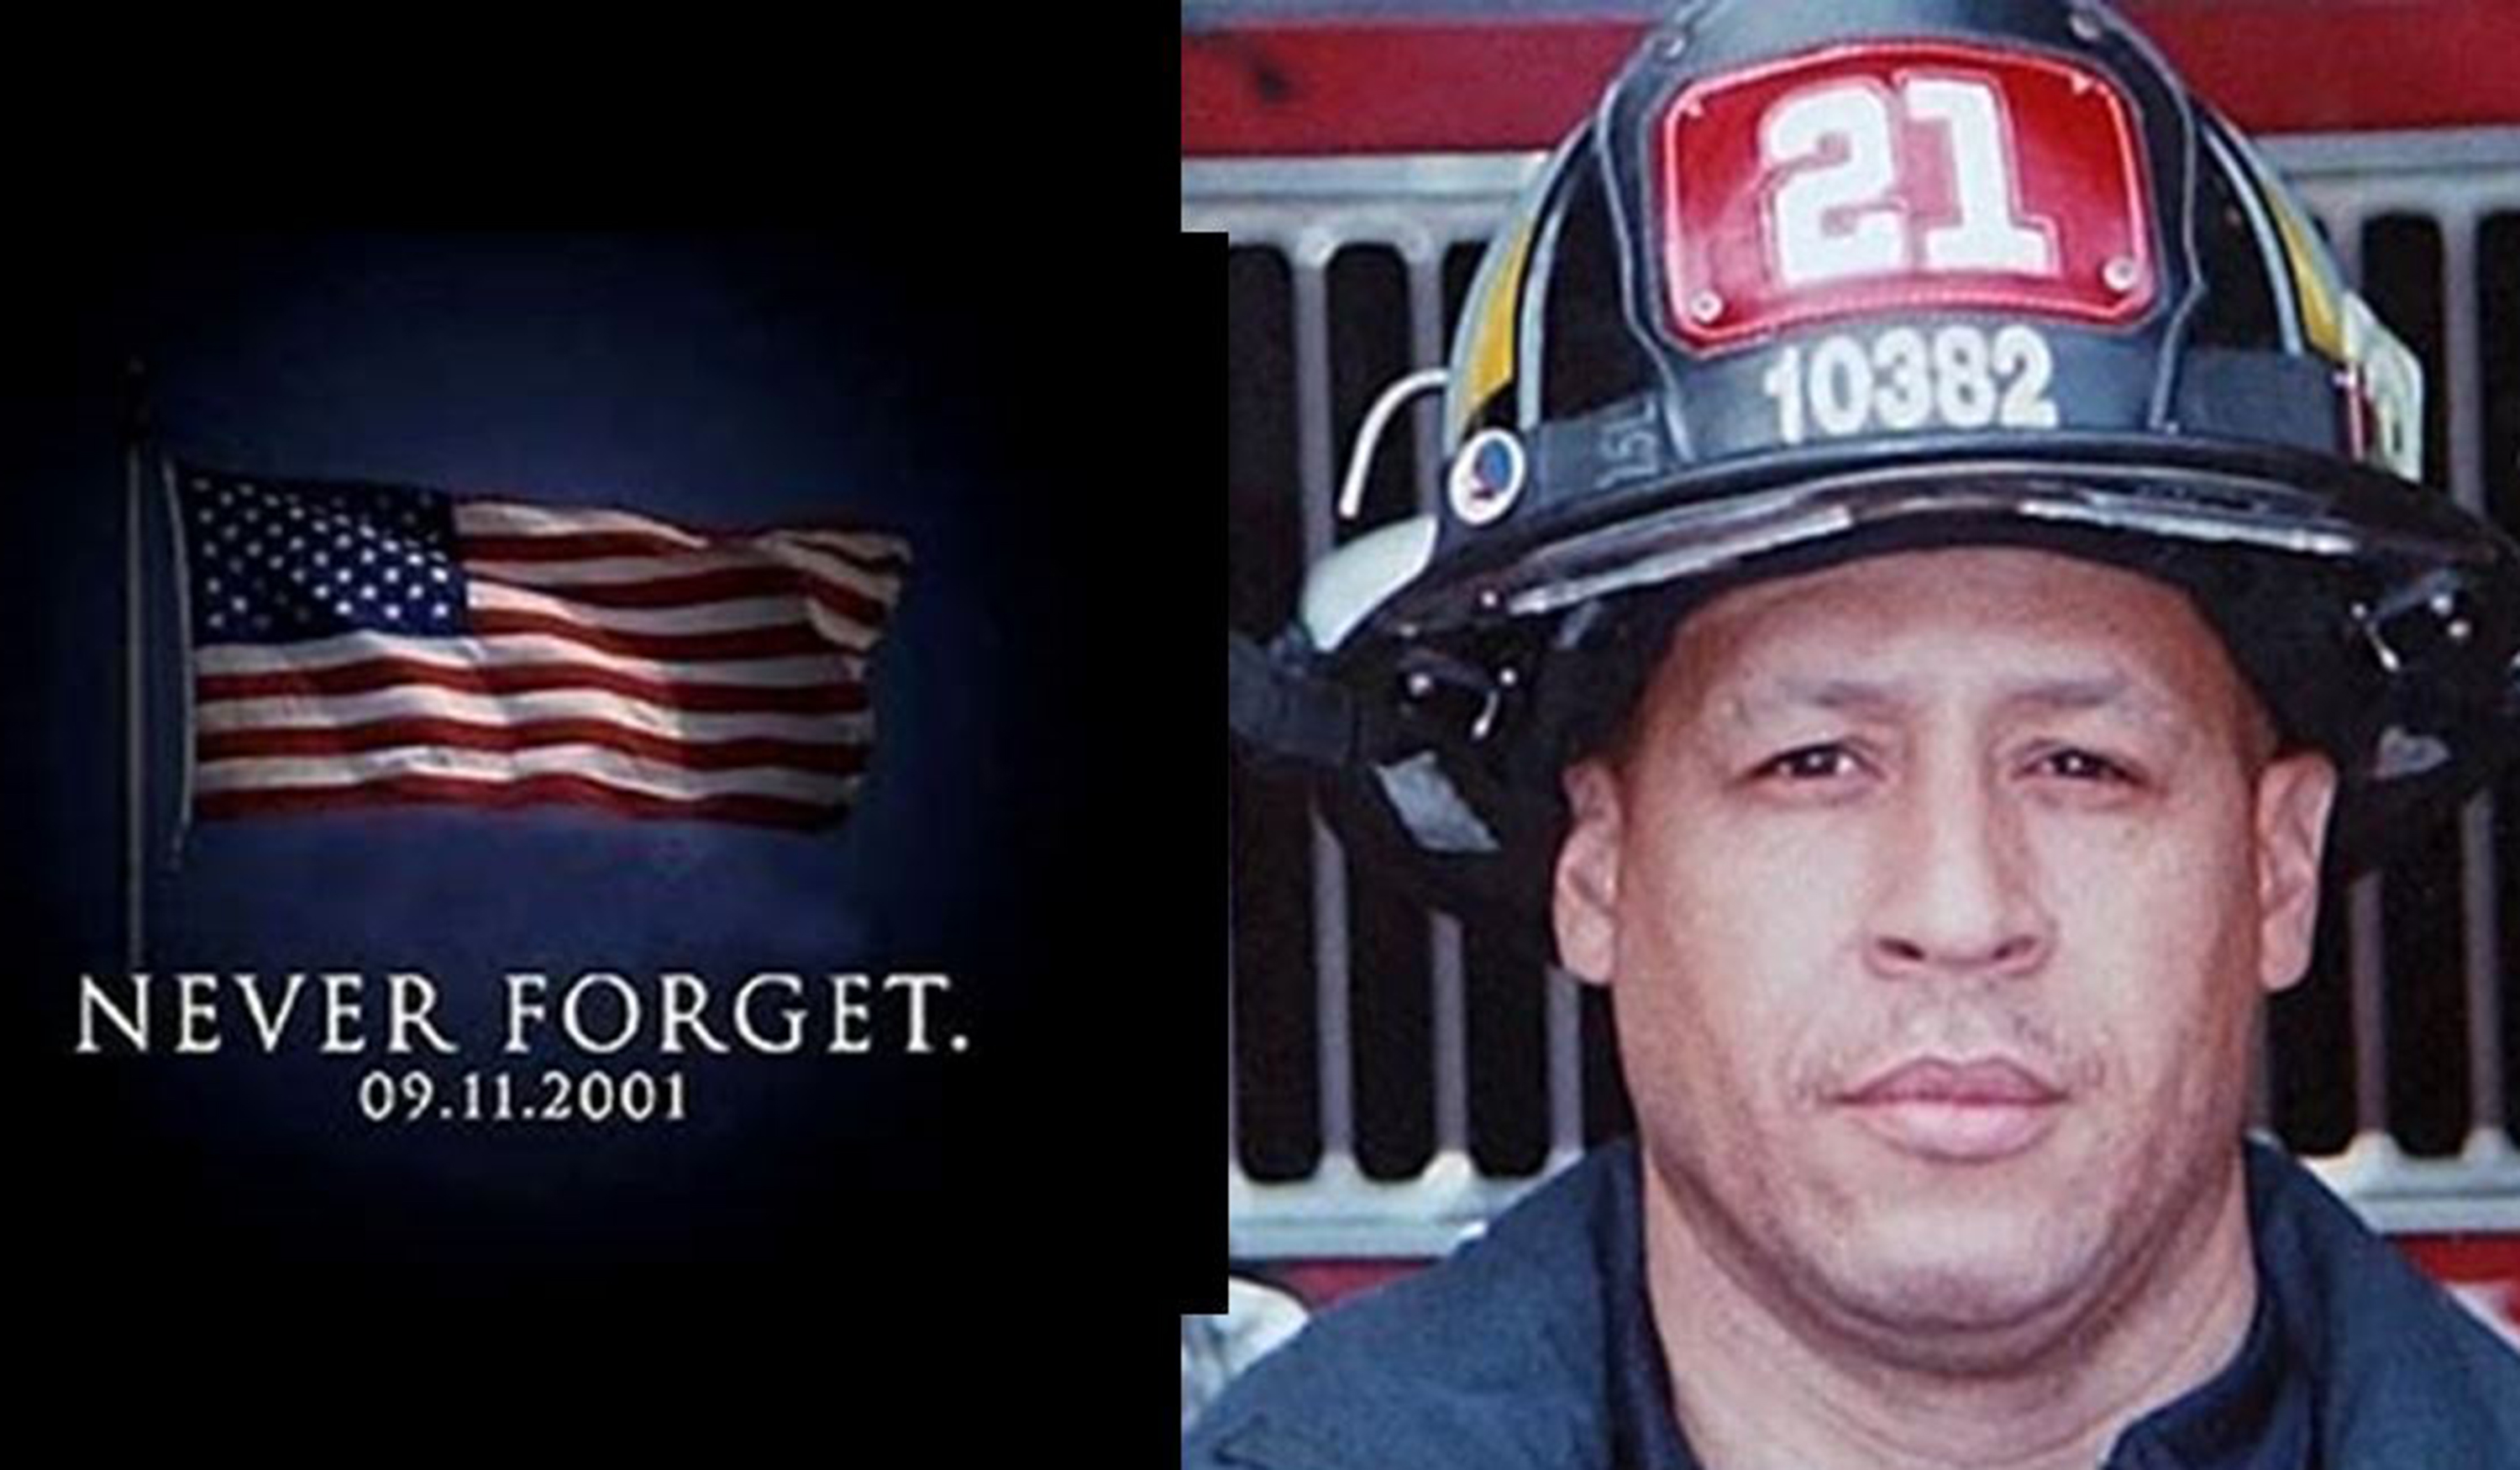 Among the recollections at Delaware State University of the 9/11 terrorist attacks is the never forgotten alumnus Keith A. Glasgoe, '85, who as a New York City fireman died trying to rescue others from the World Trade Center.